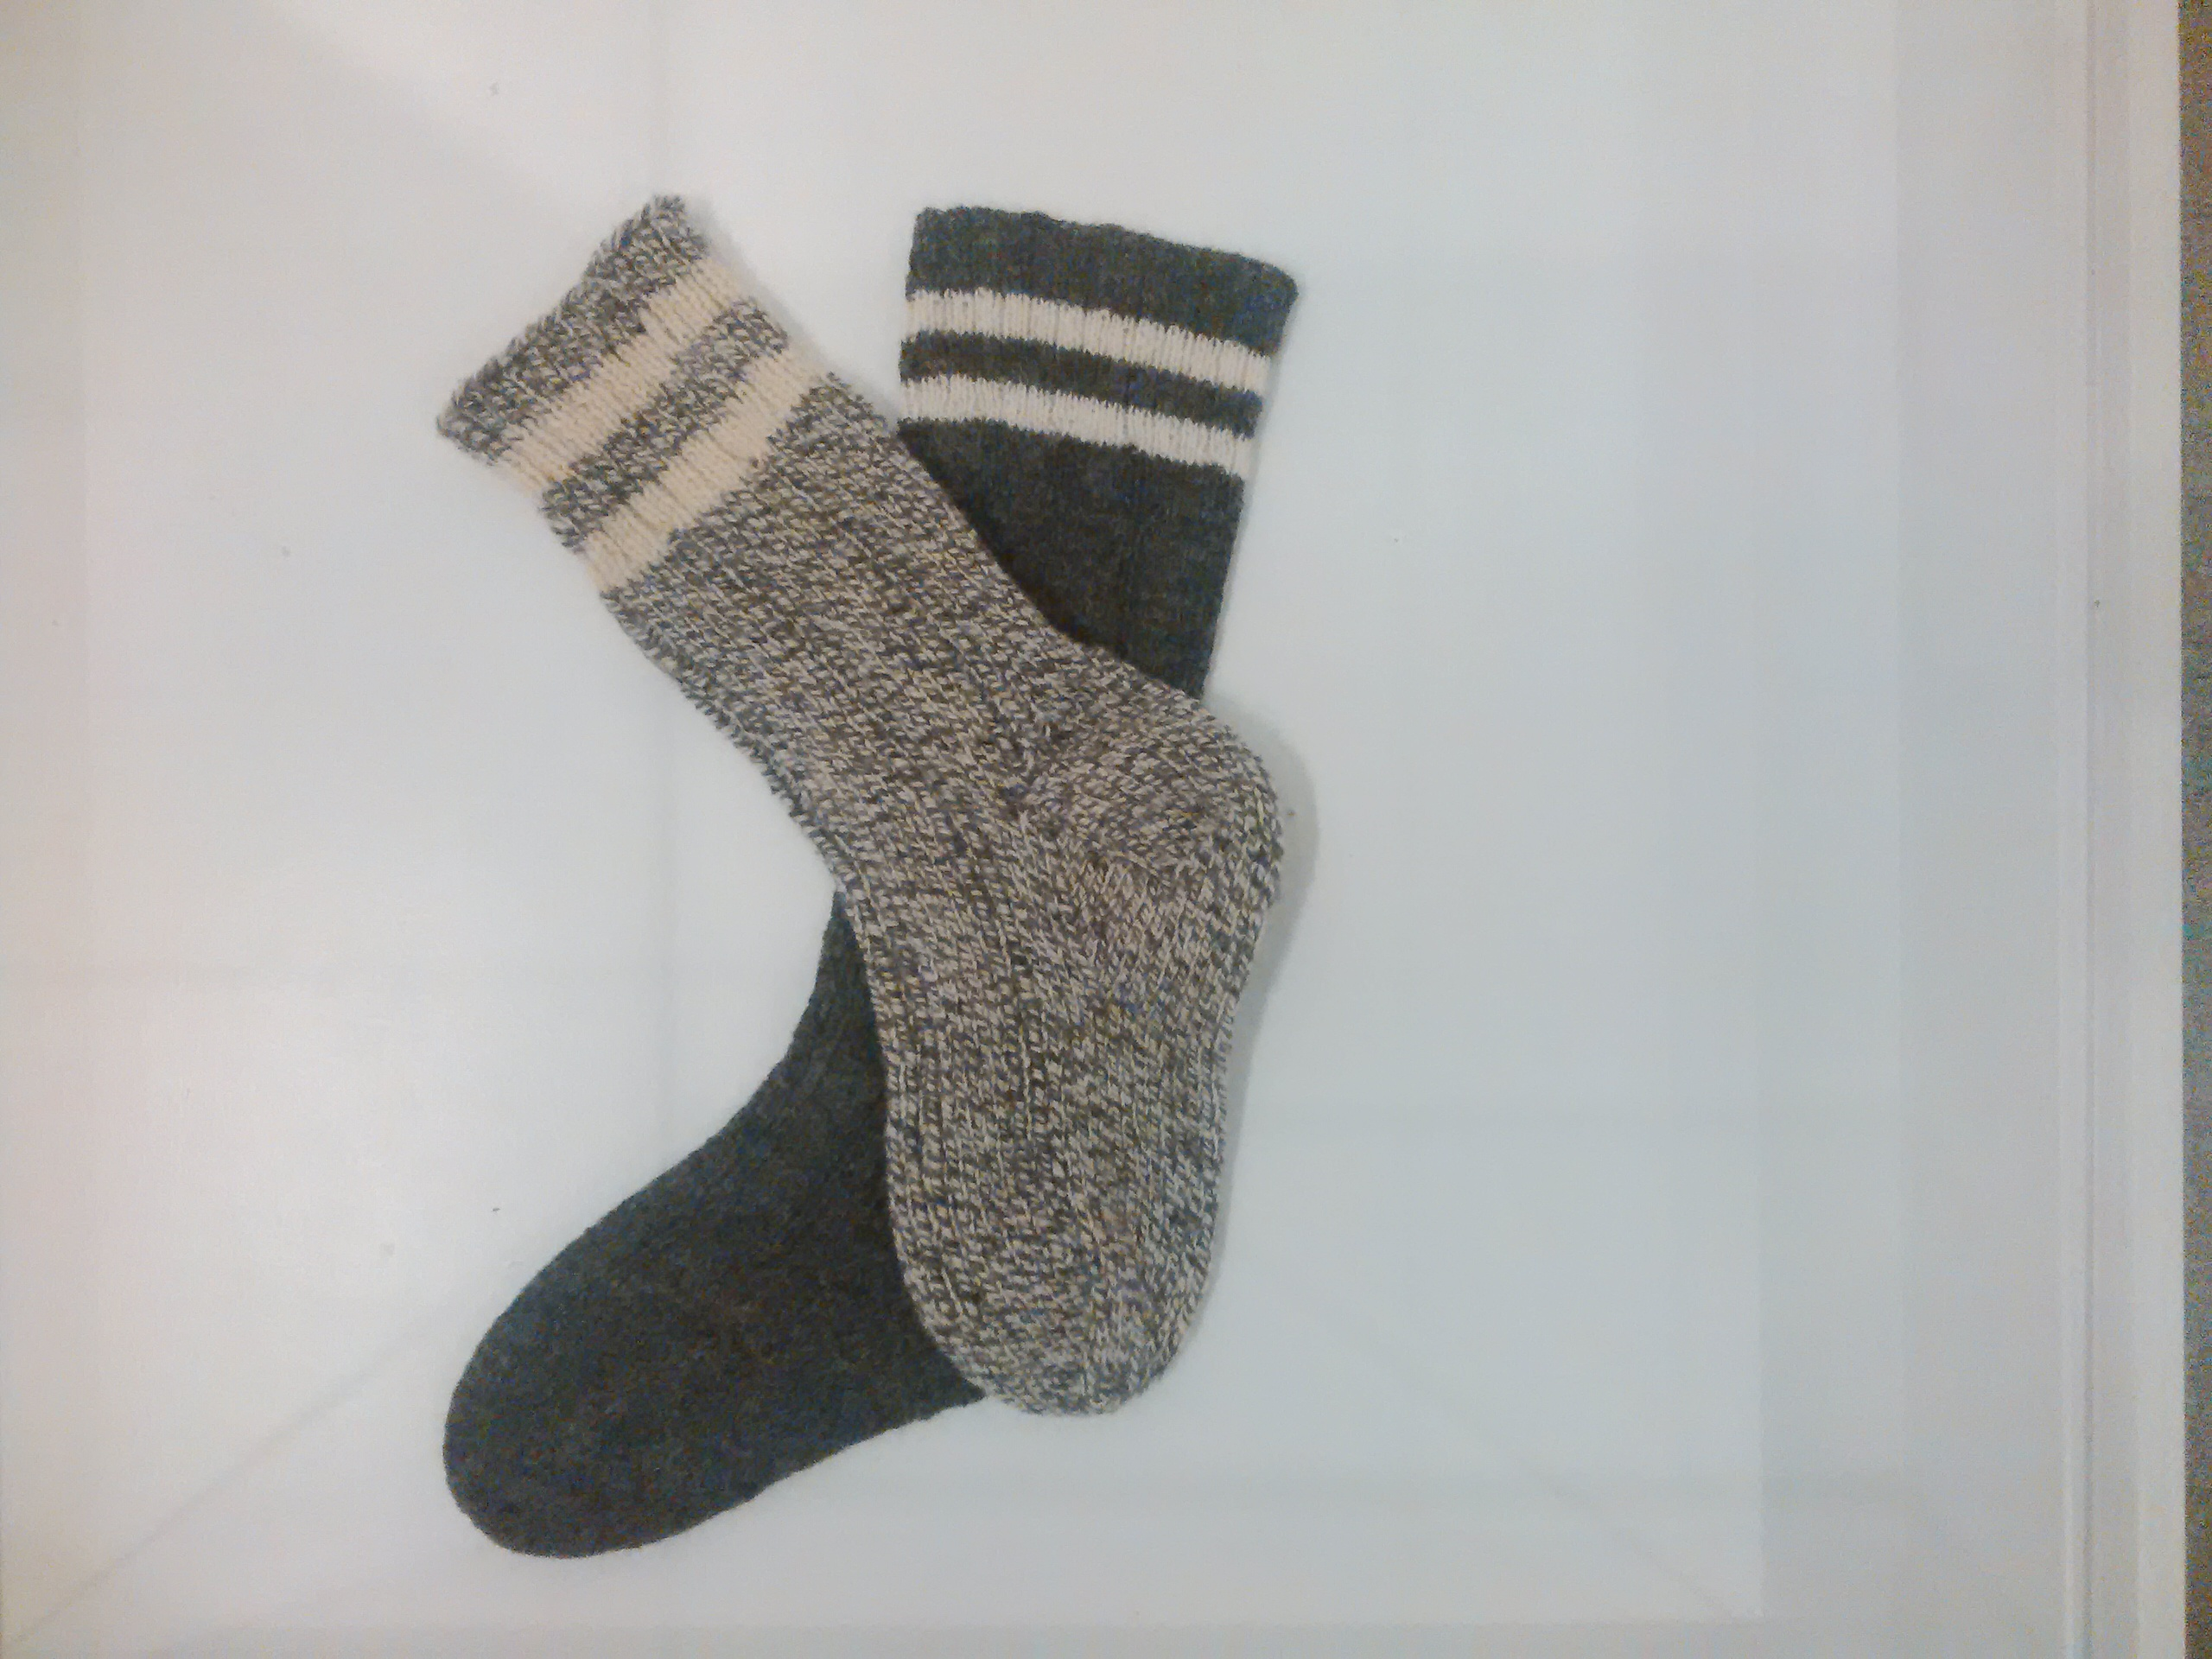 Woolen Socks Knitting Pattern : More than a pair of socks Archival Moments